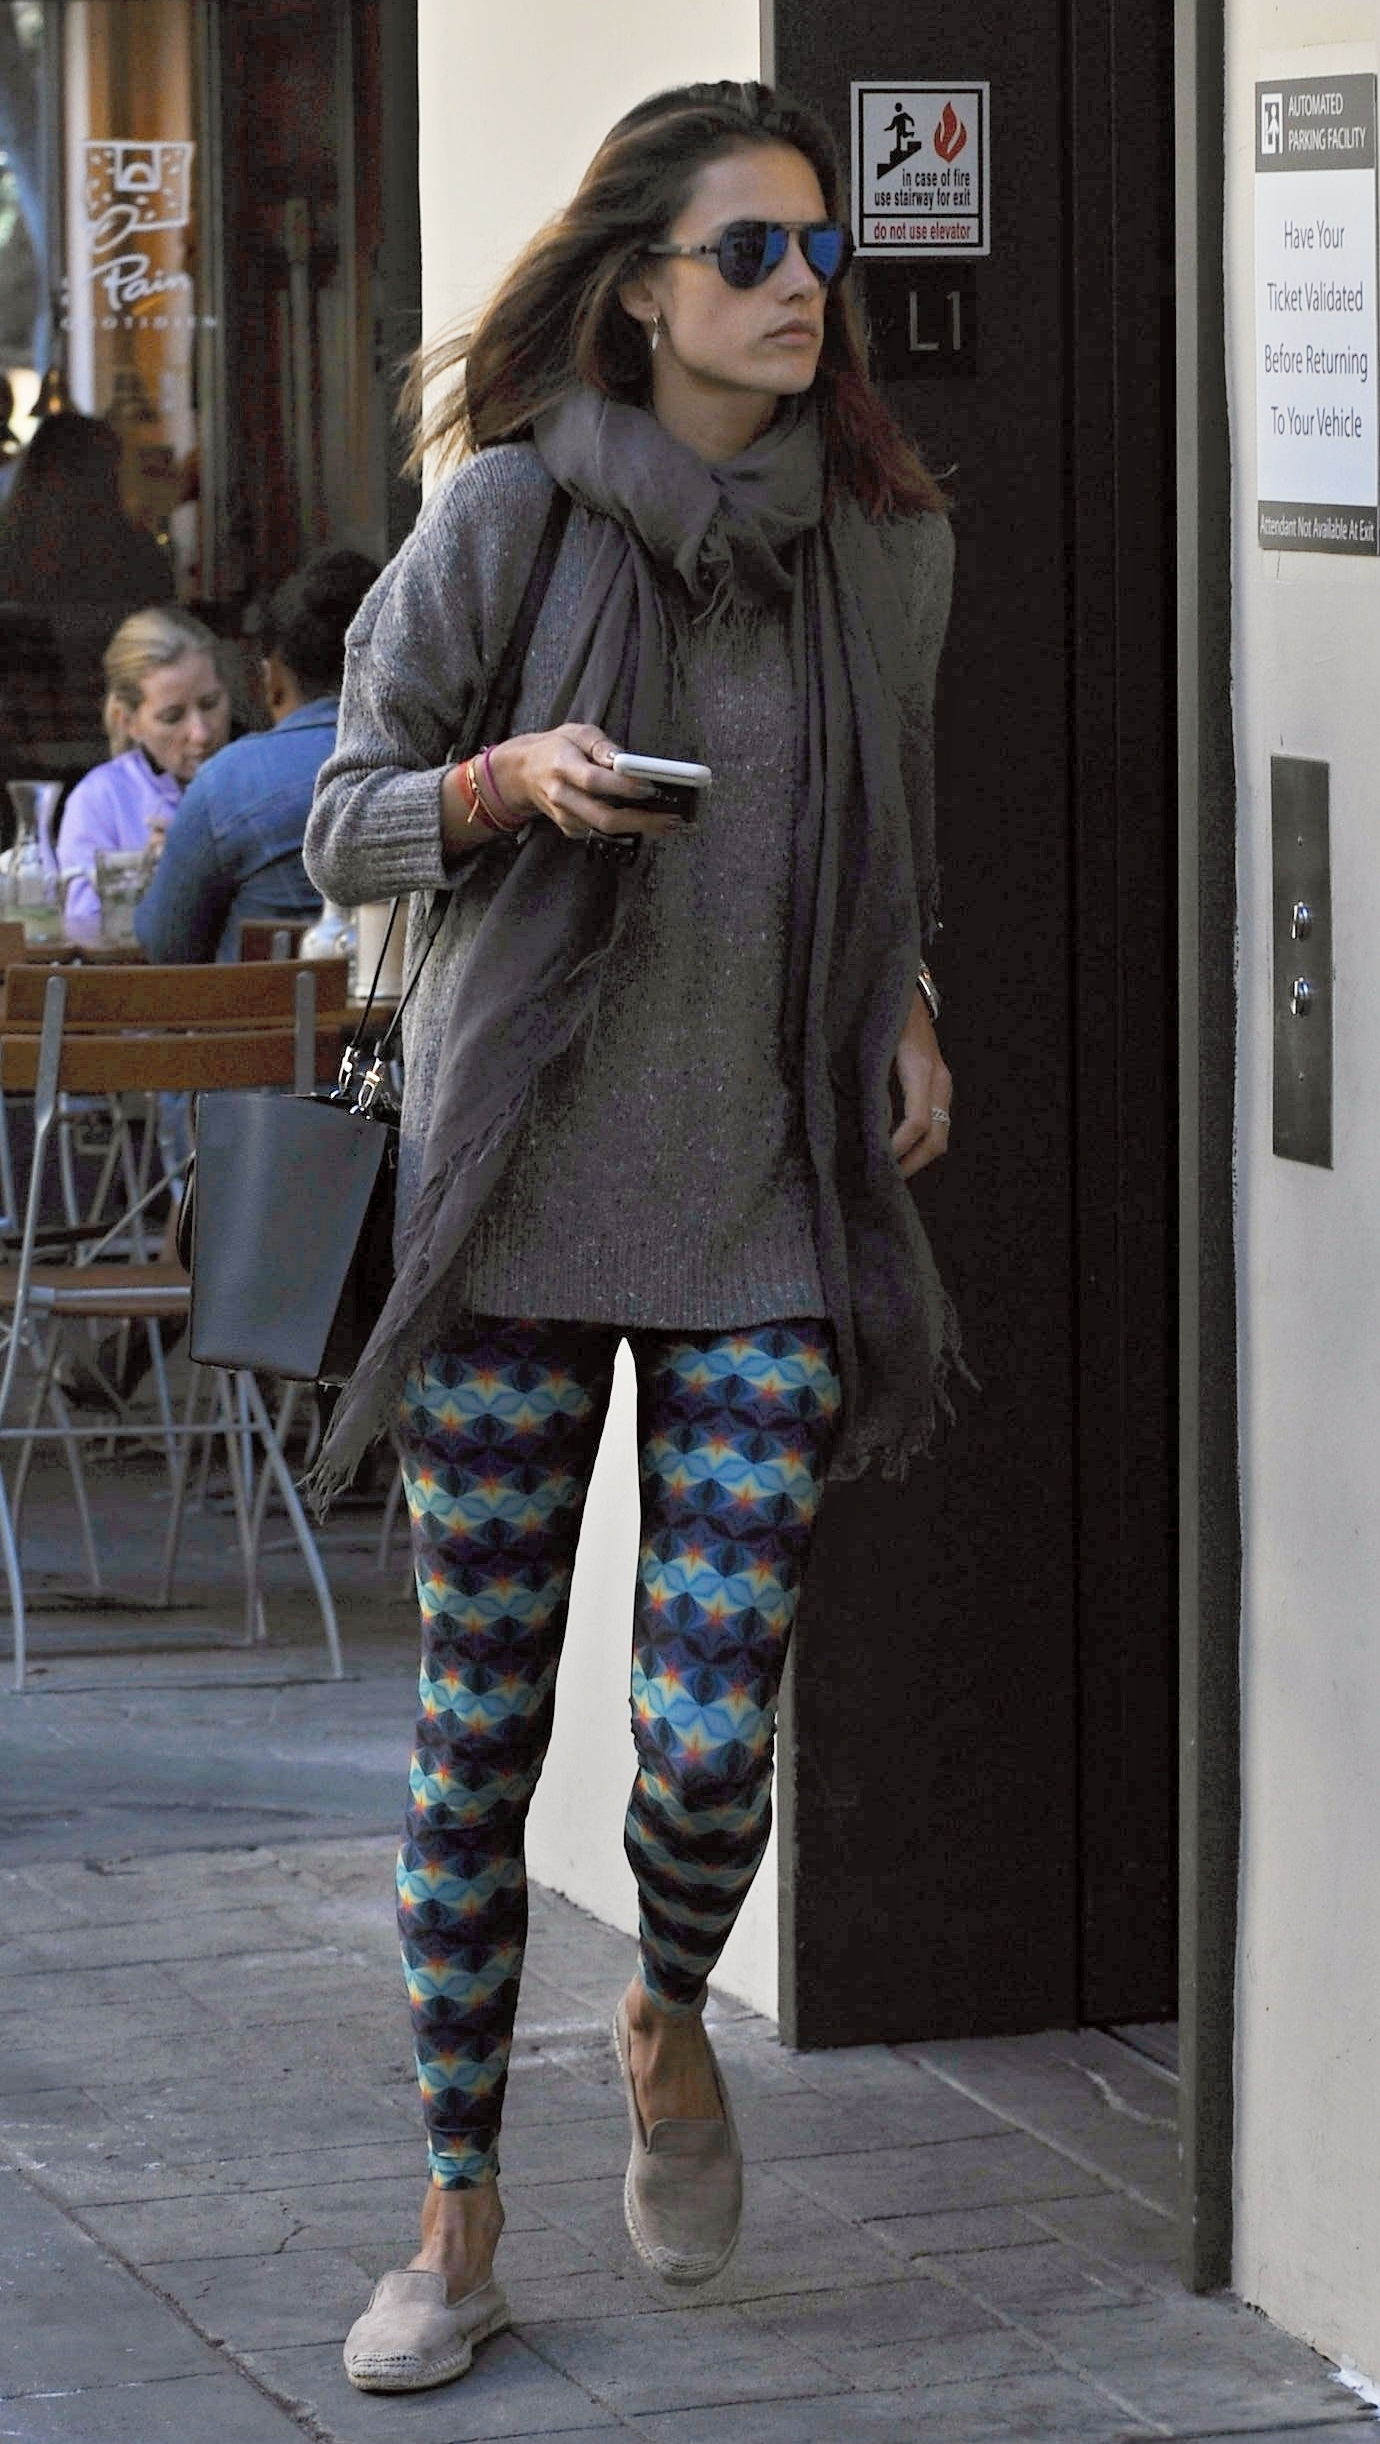 Model Alessandra Ambrosio wearing geometric pattern yoga pants after a yoga class                                    Featuring: Alessandra Ambrosio                  Where: Brentwood, California, United States                  When: 12 Jan 2016                  Credit: WENN.com